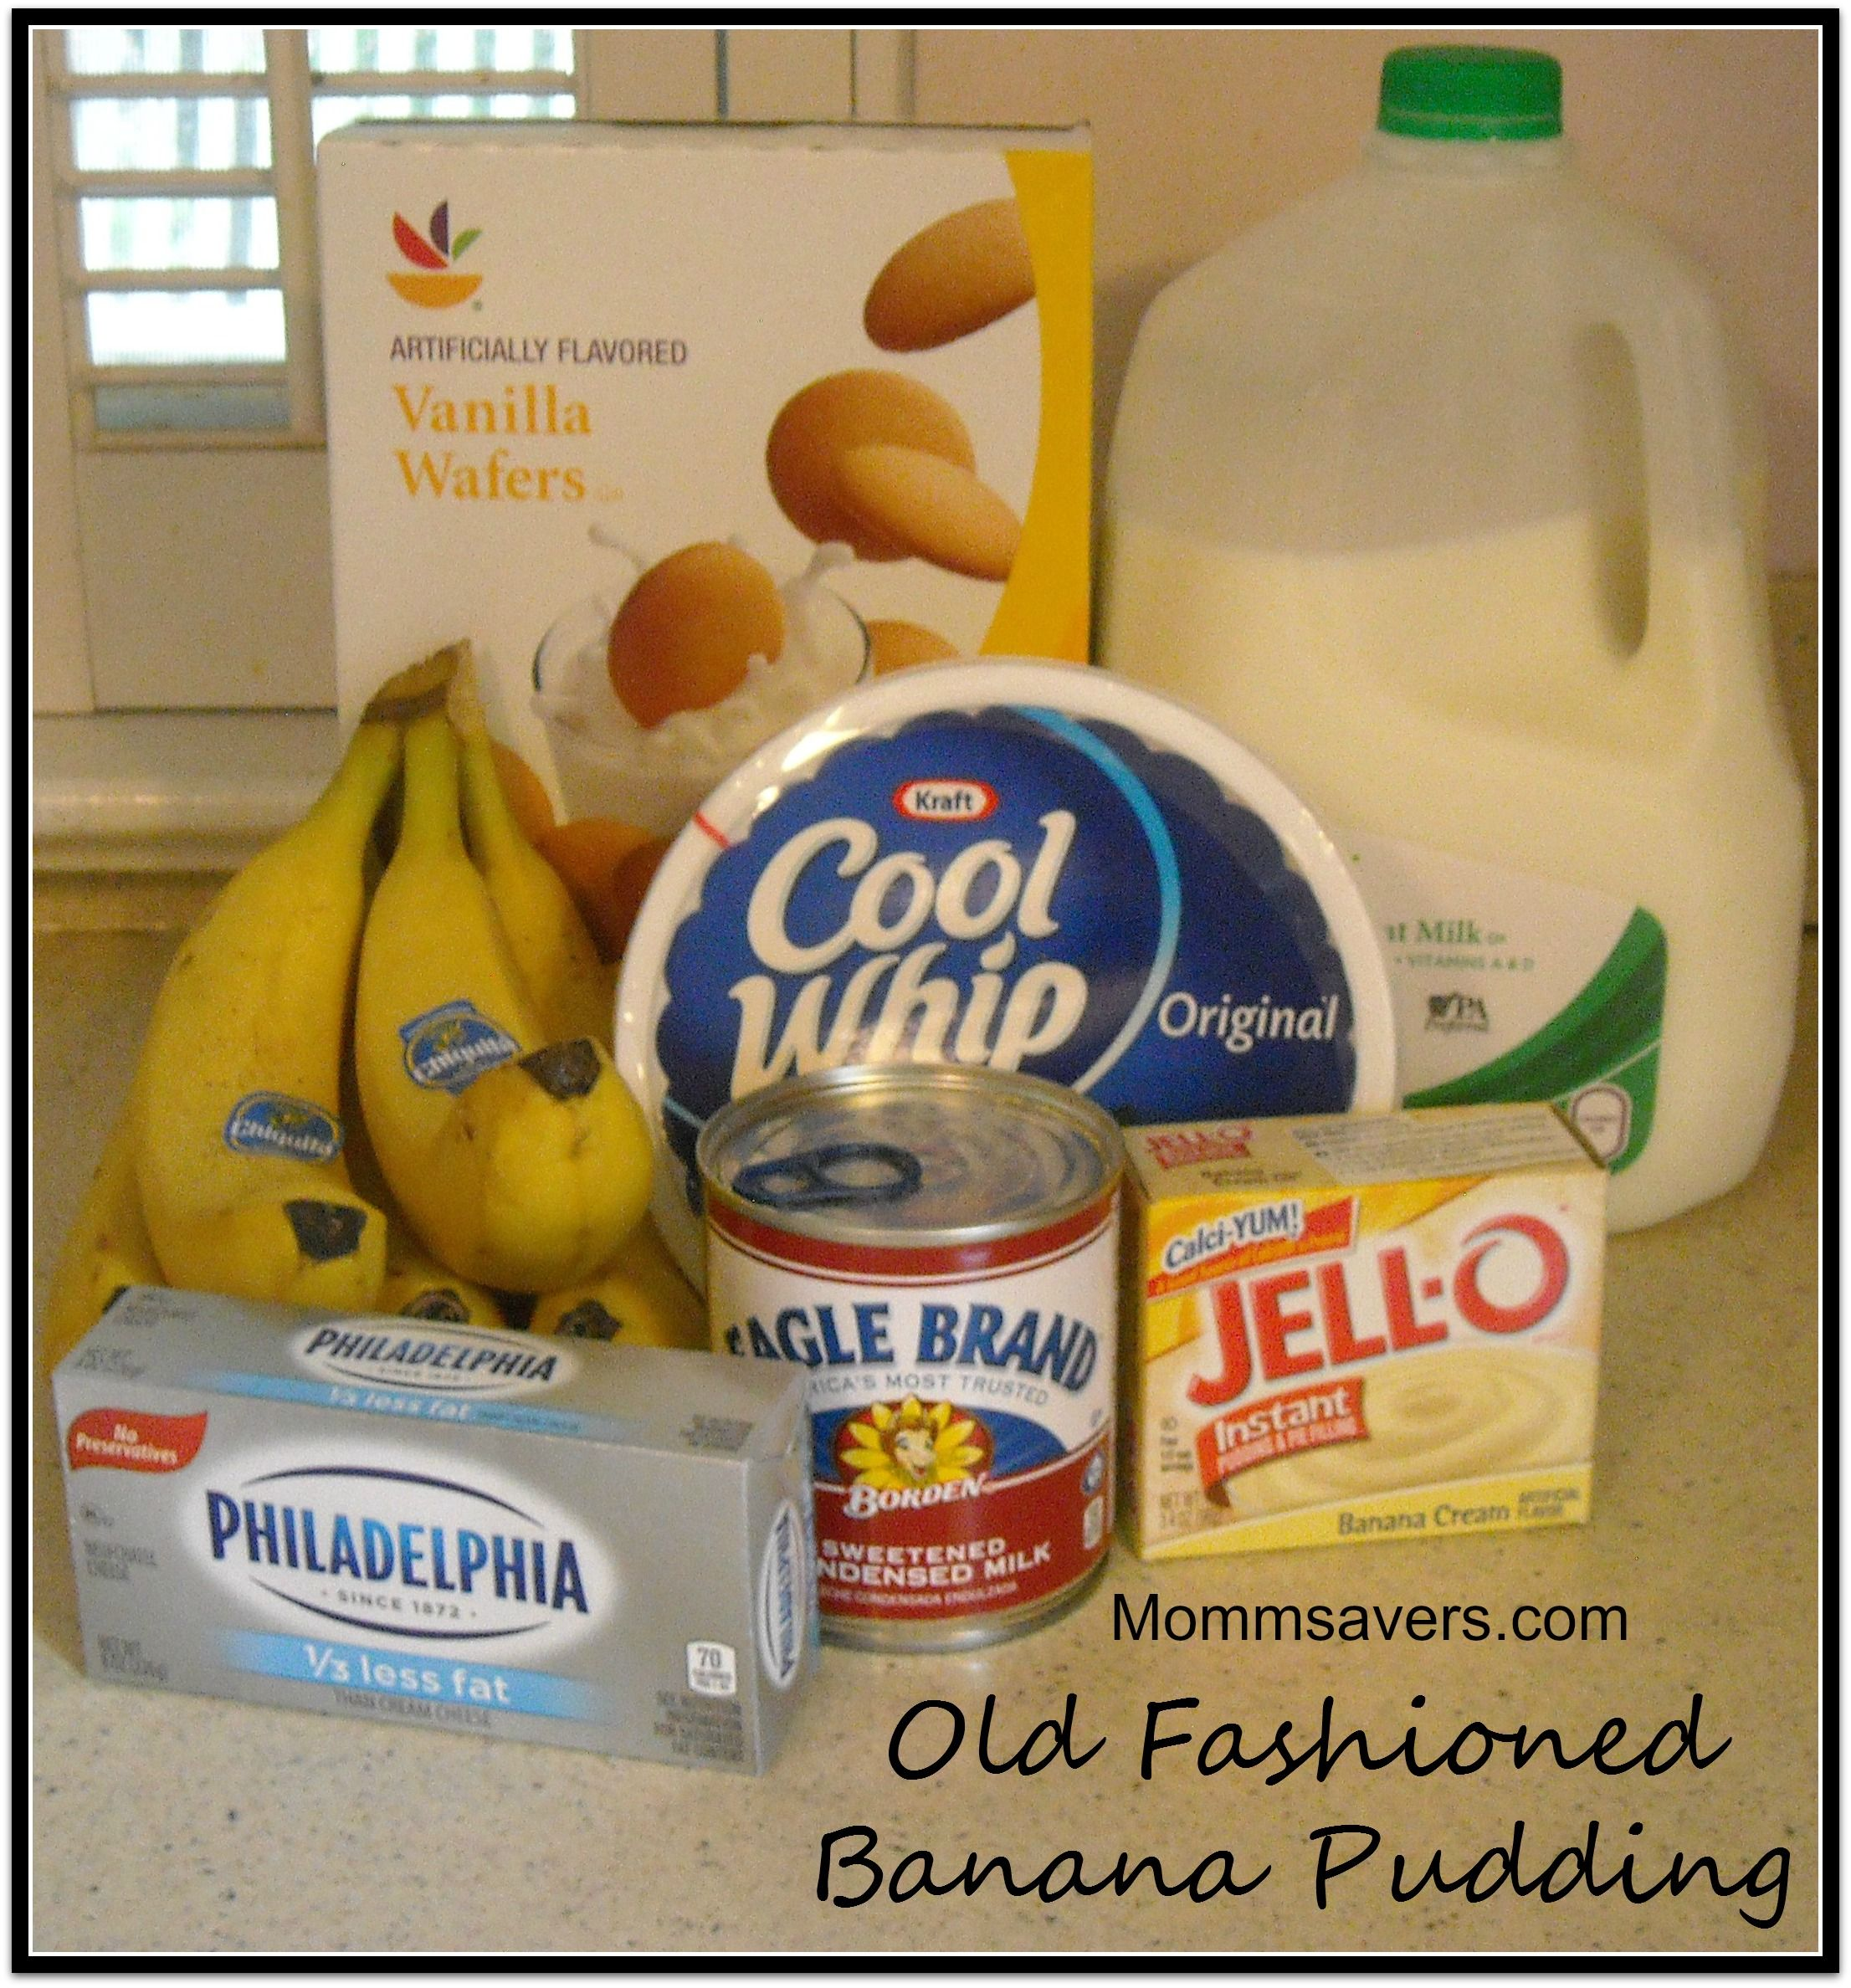 Easy Old Fashioned Banana Pudding Only 7 Ingredients Banana Pudding Old Fashioned Banana Pudding Instant Banana Pudding